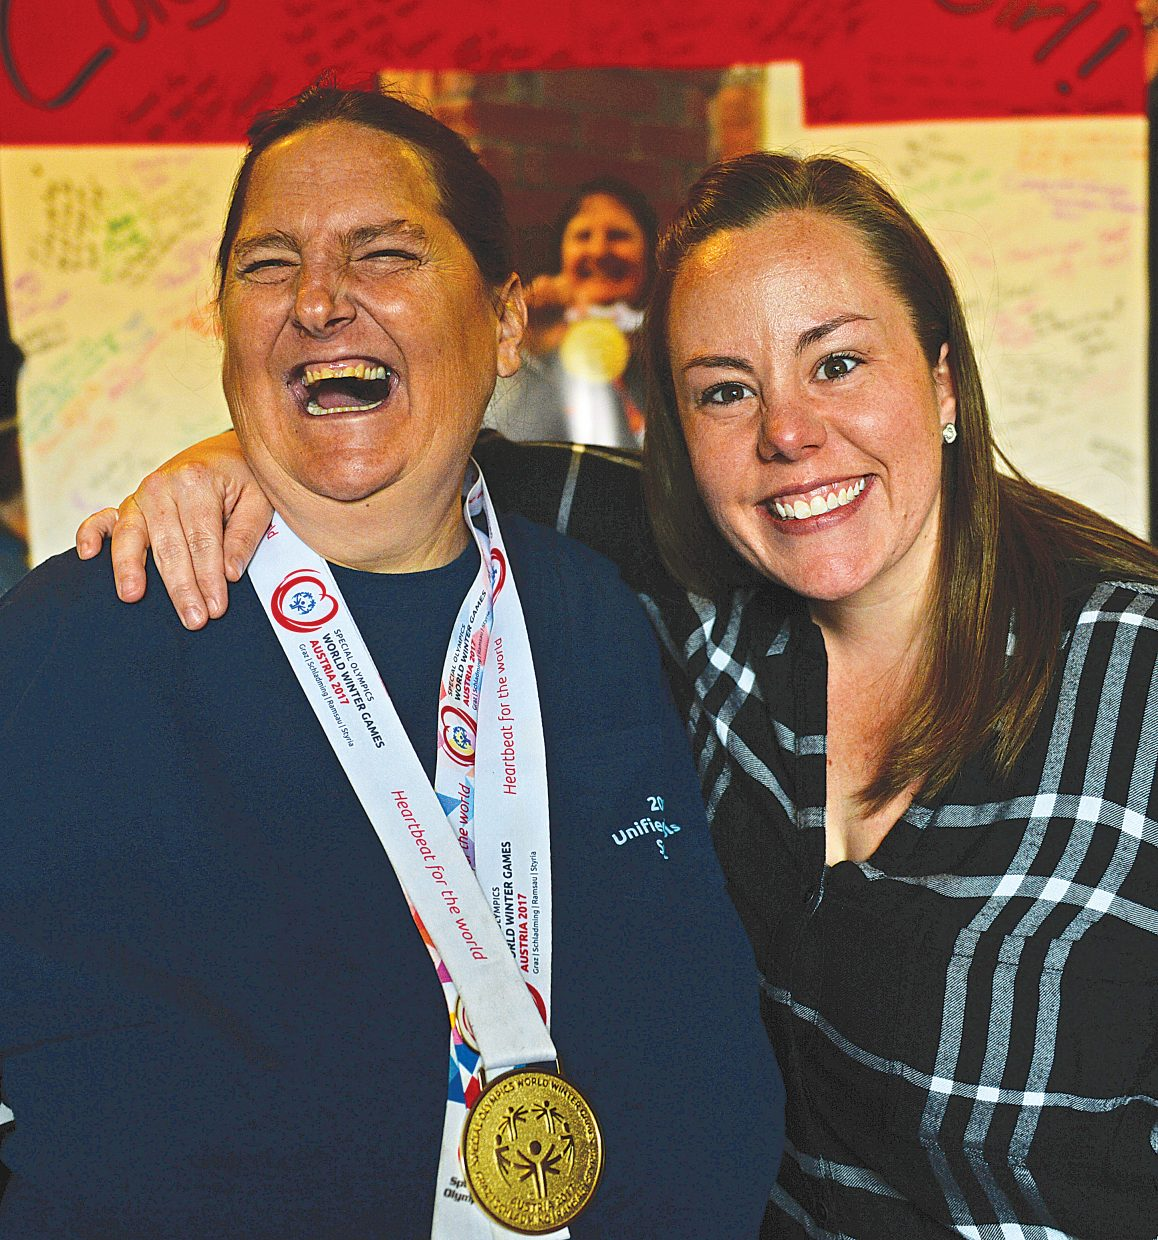 Sue White, just back from Austria where she competed in the Special Olympics World Winter Games, hugs Meghan McNamara, who works for Horizons in Steamboat Springs. McNamara used vacation time and paid her own way to go see the Games and support White.